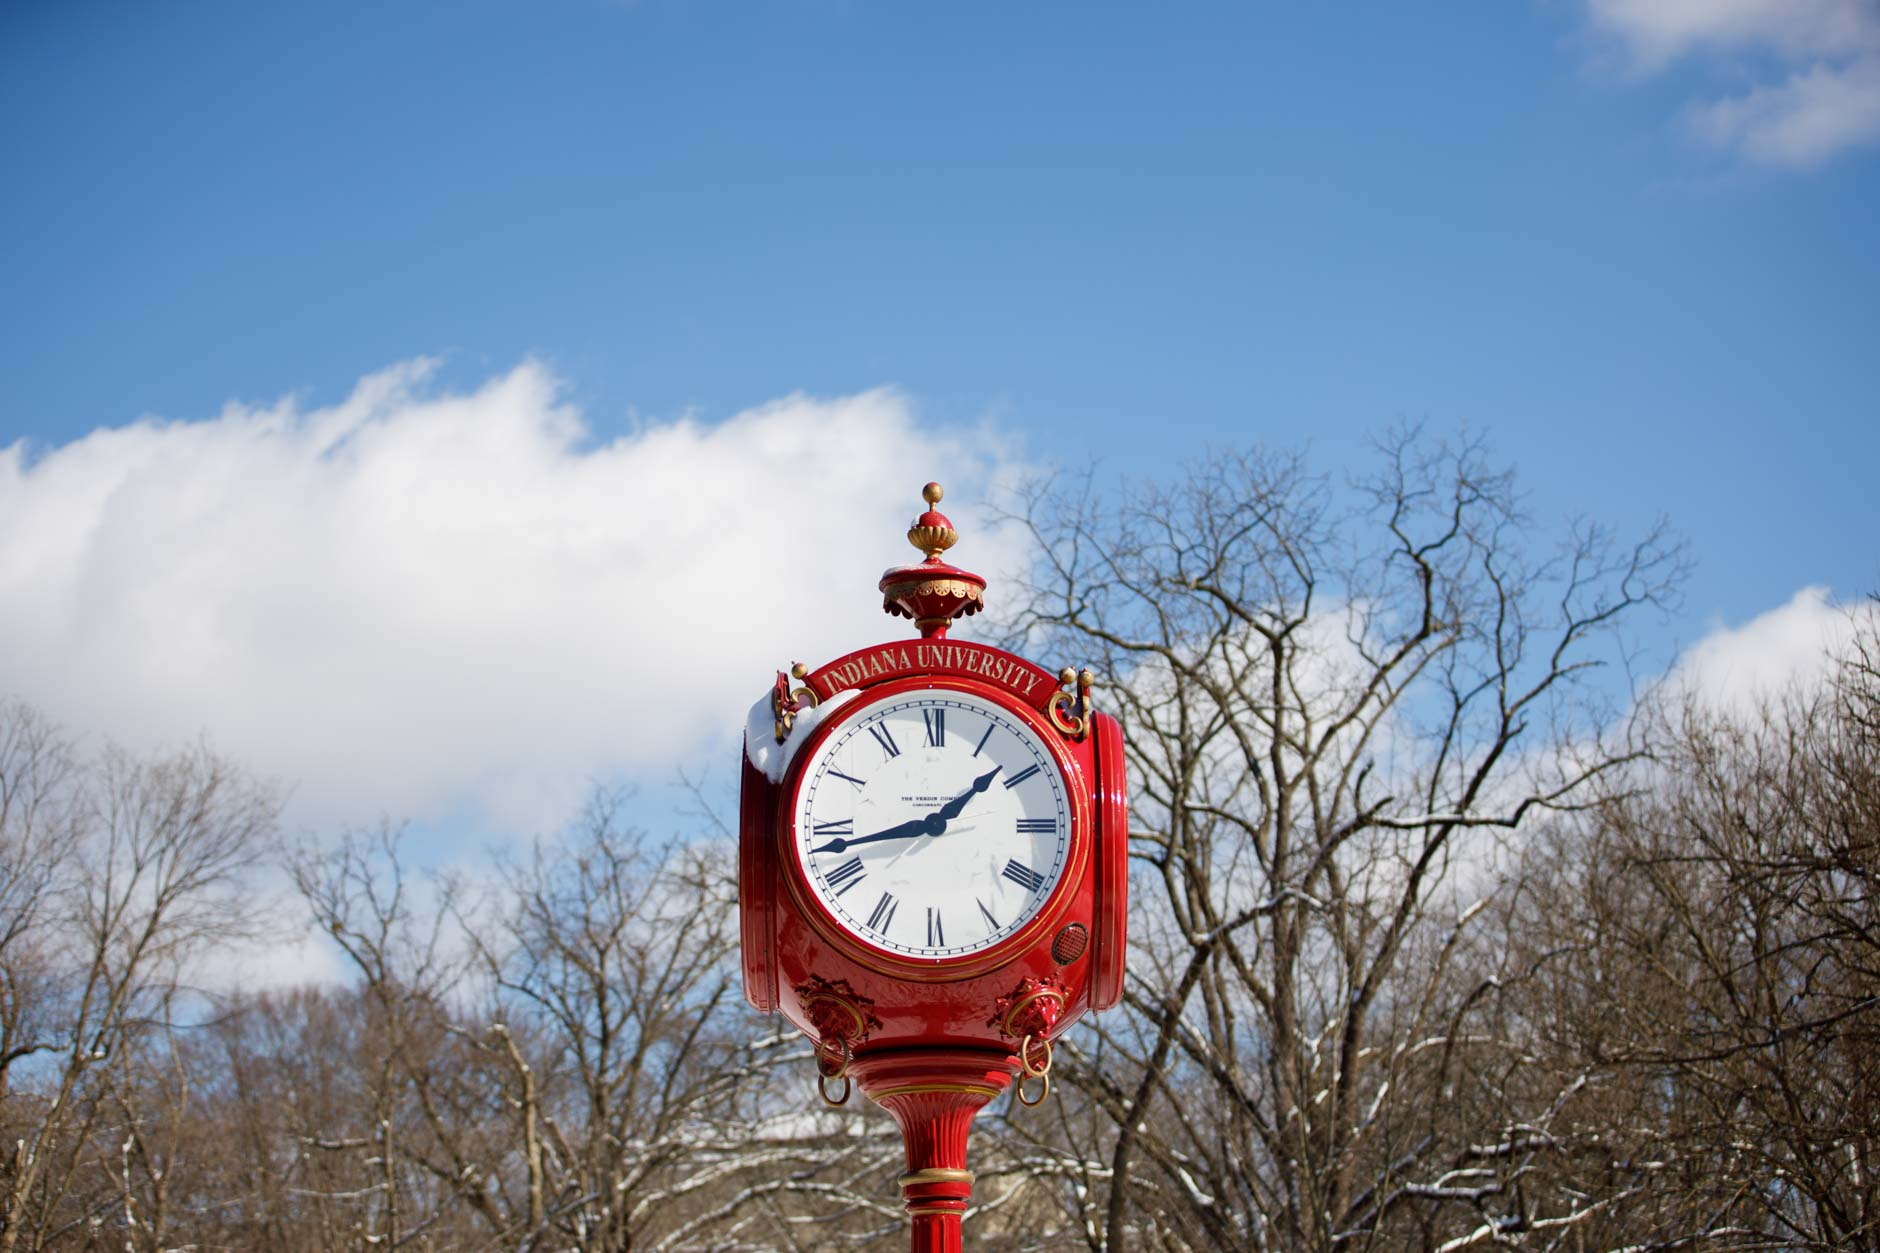 Snow adorns the top of a red clock near Woodburn Hall on a winter day at Indiana University Bloomington on Thursday, Jan. 28, 2021. (James Brosher/Indiana University)